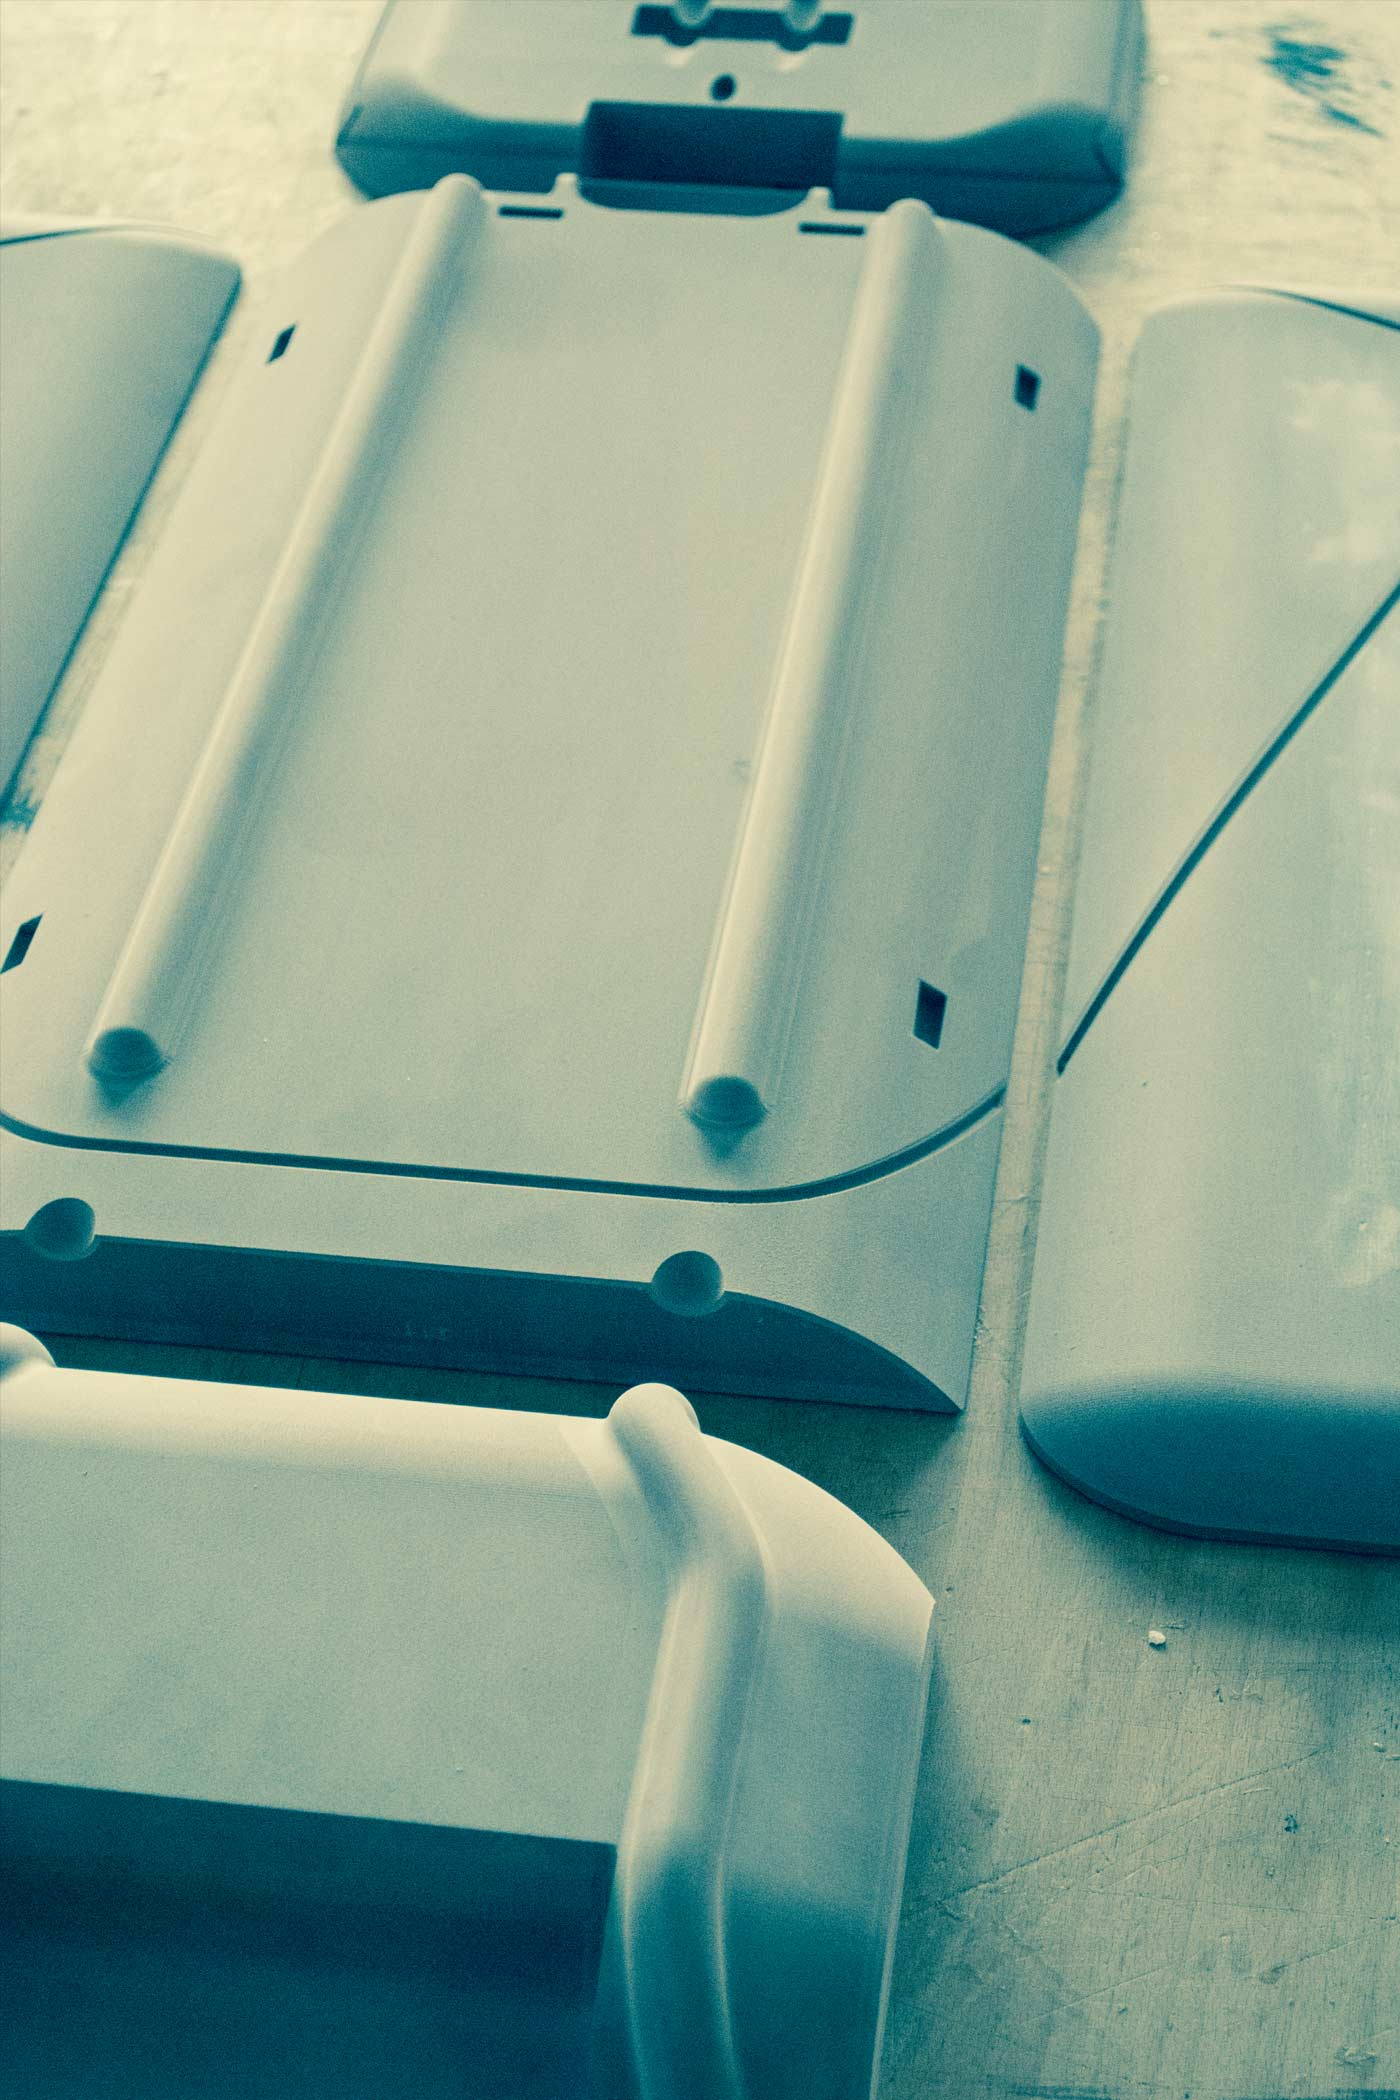 Milled parts for the Stadtkoffer mockup by WACH designstudio